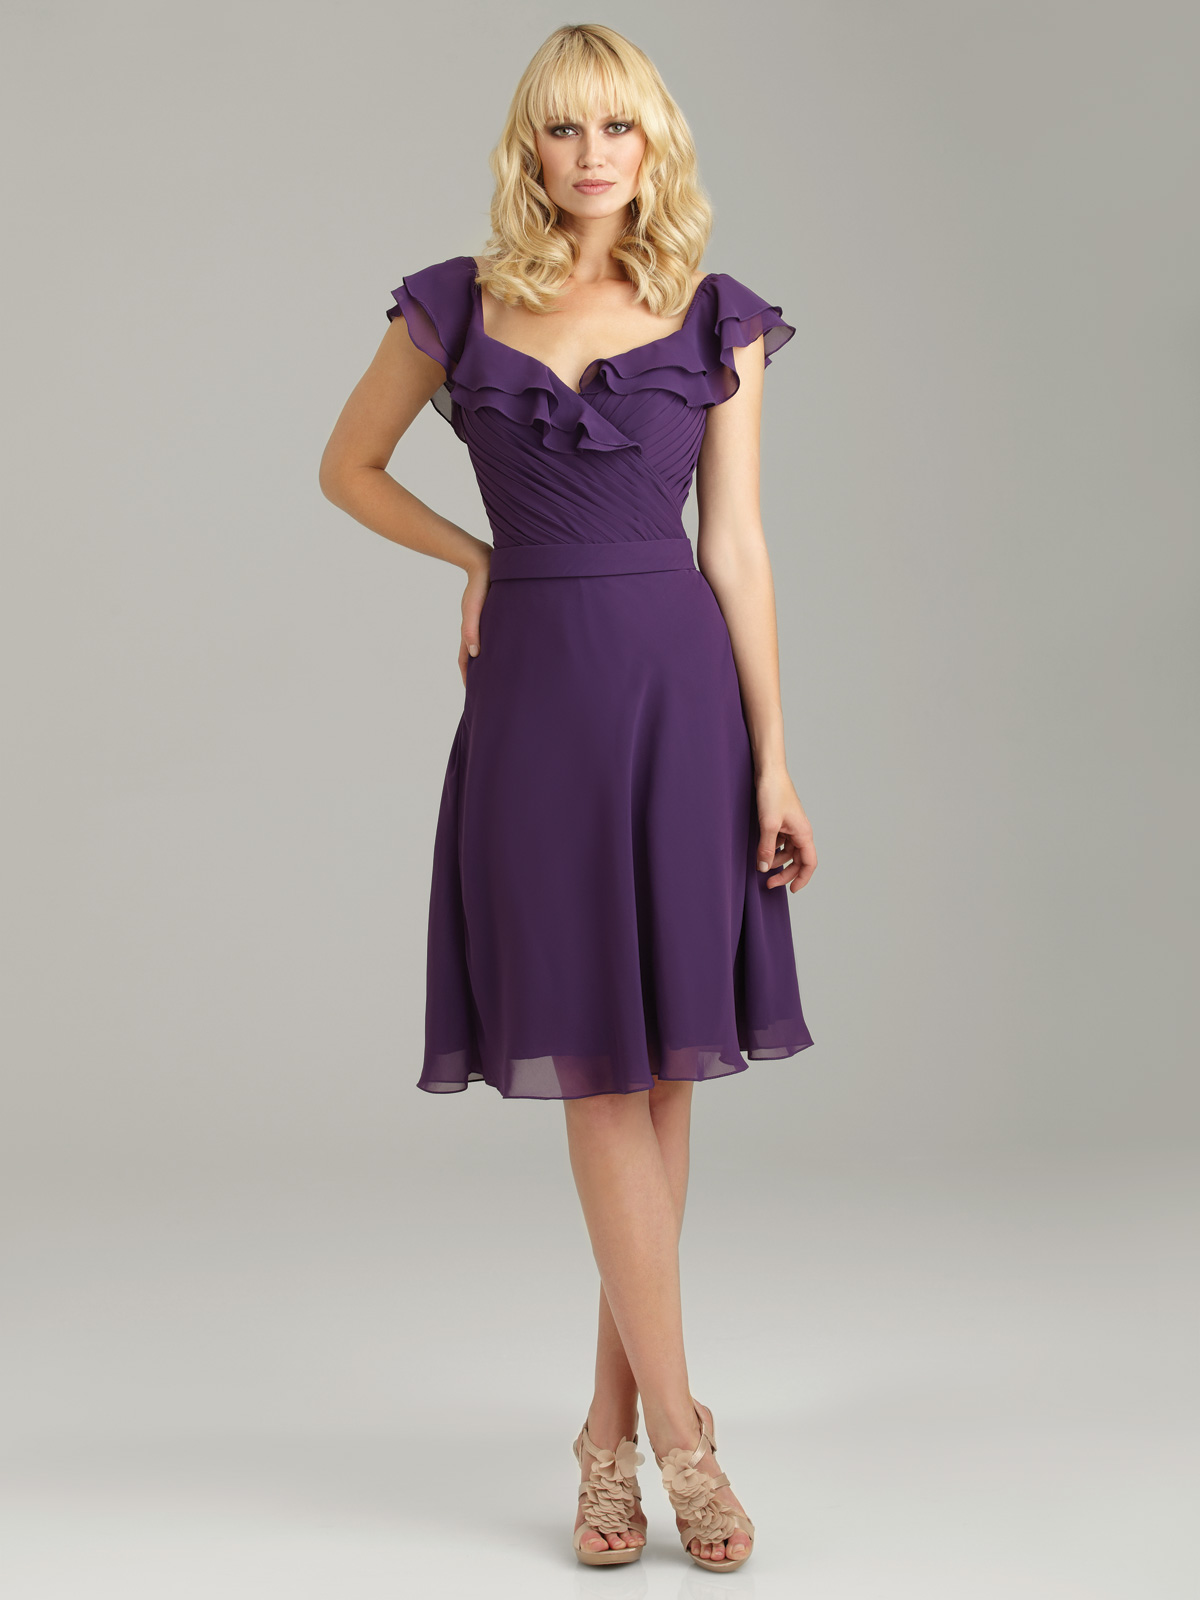 Purple chiffon bridesmaid dress